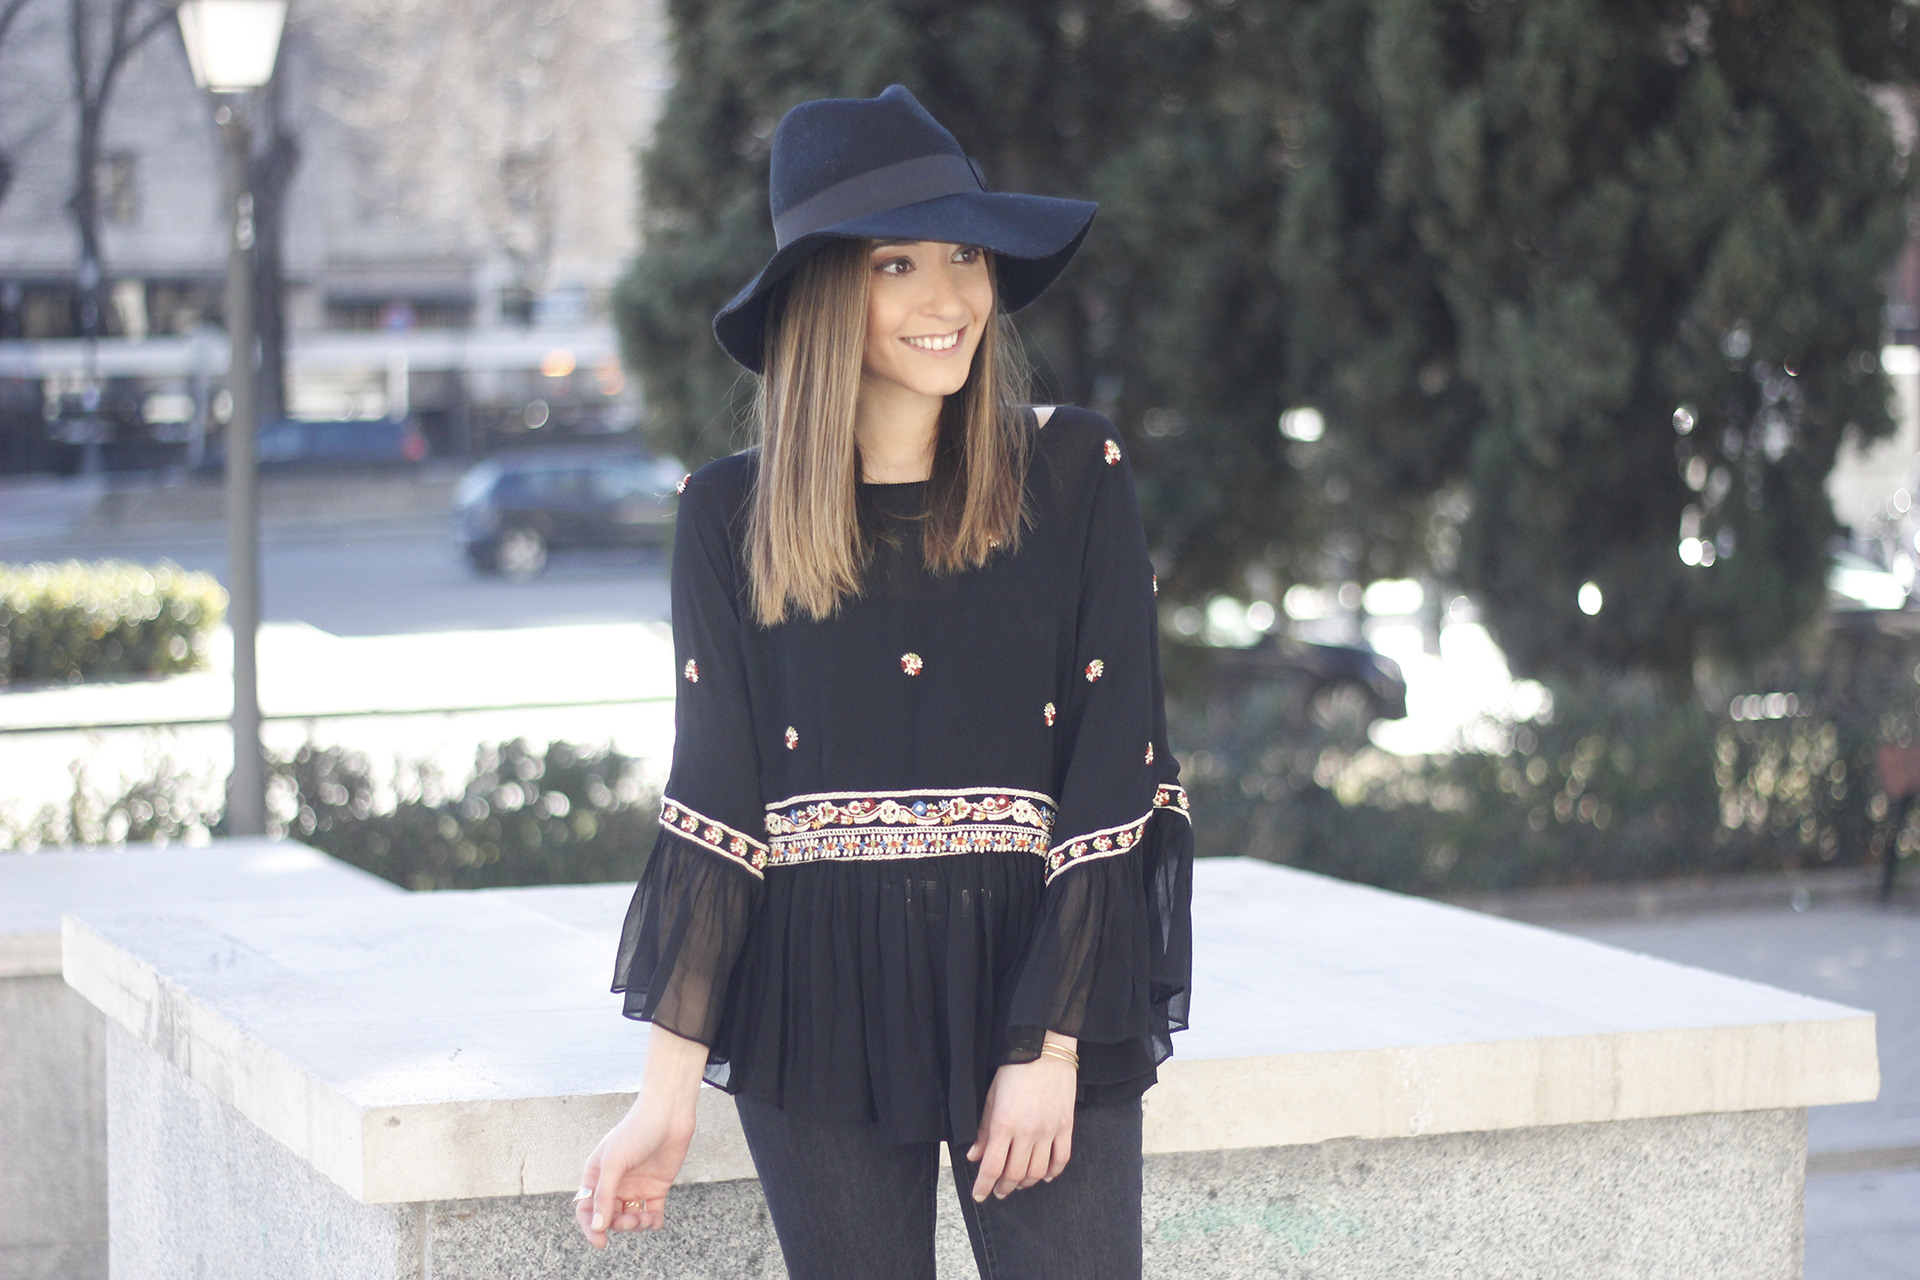 flared jeans boho blouse hat accessories outfit fashion05